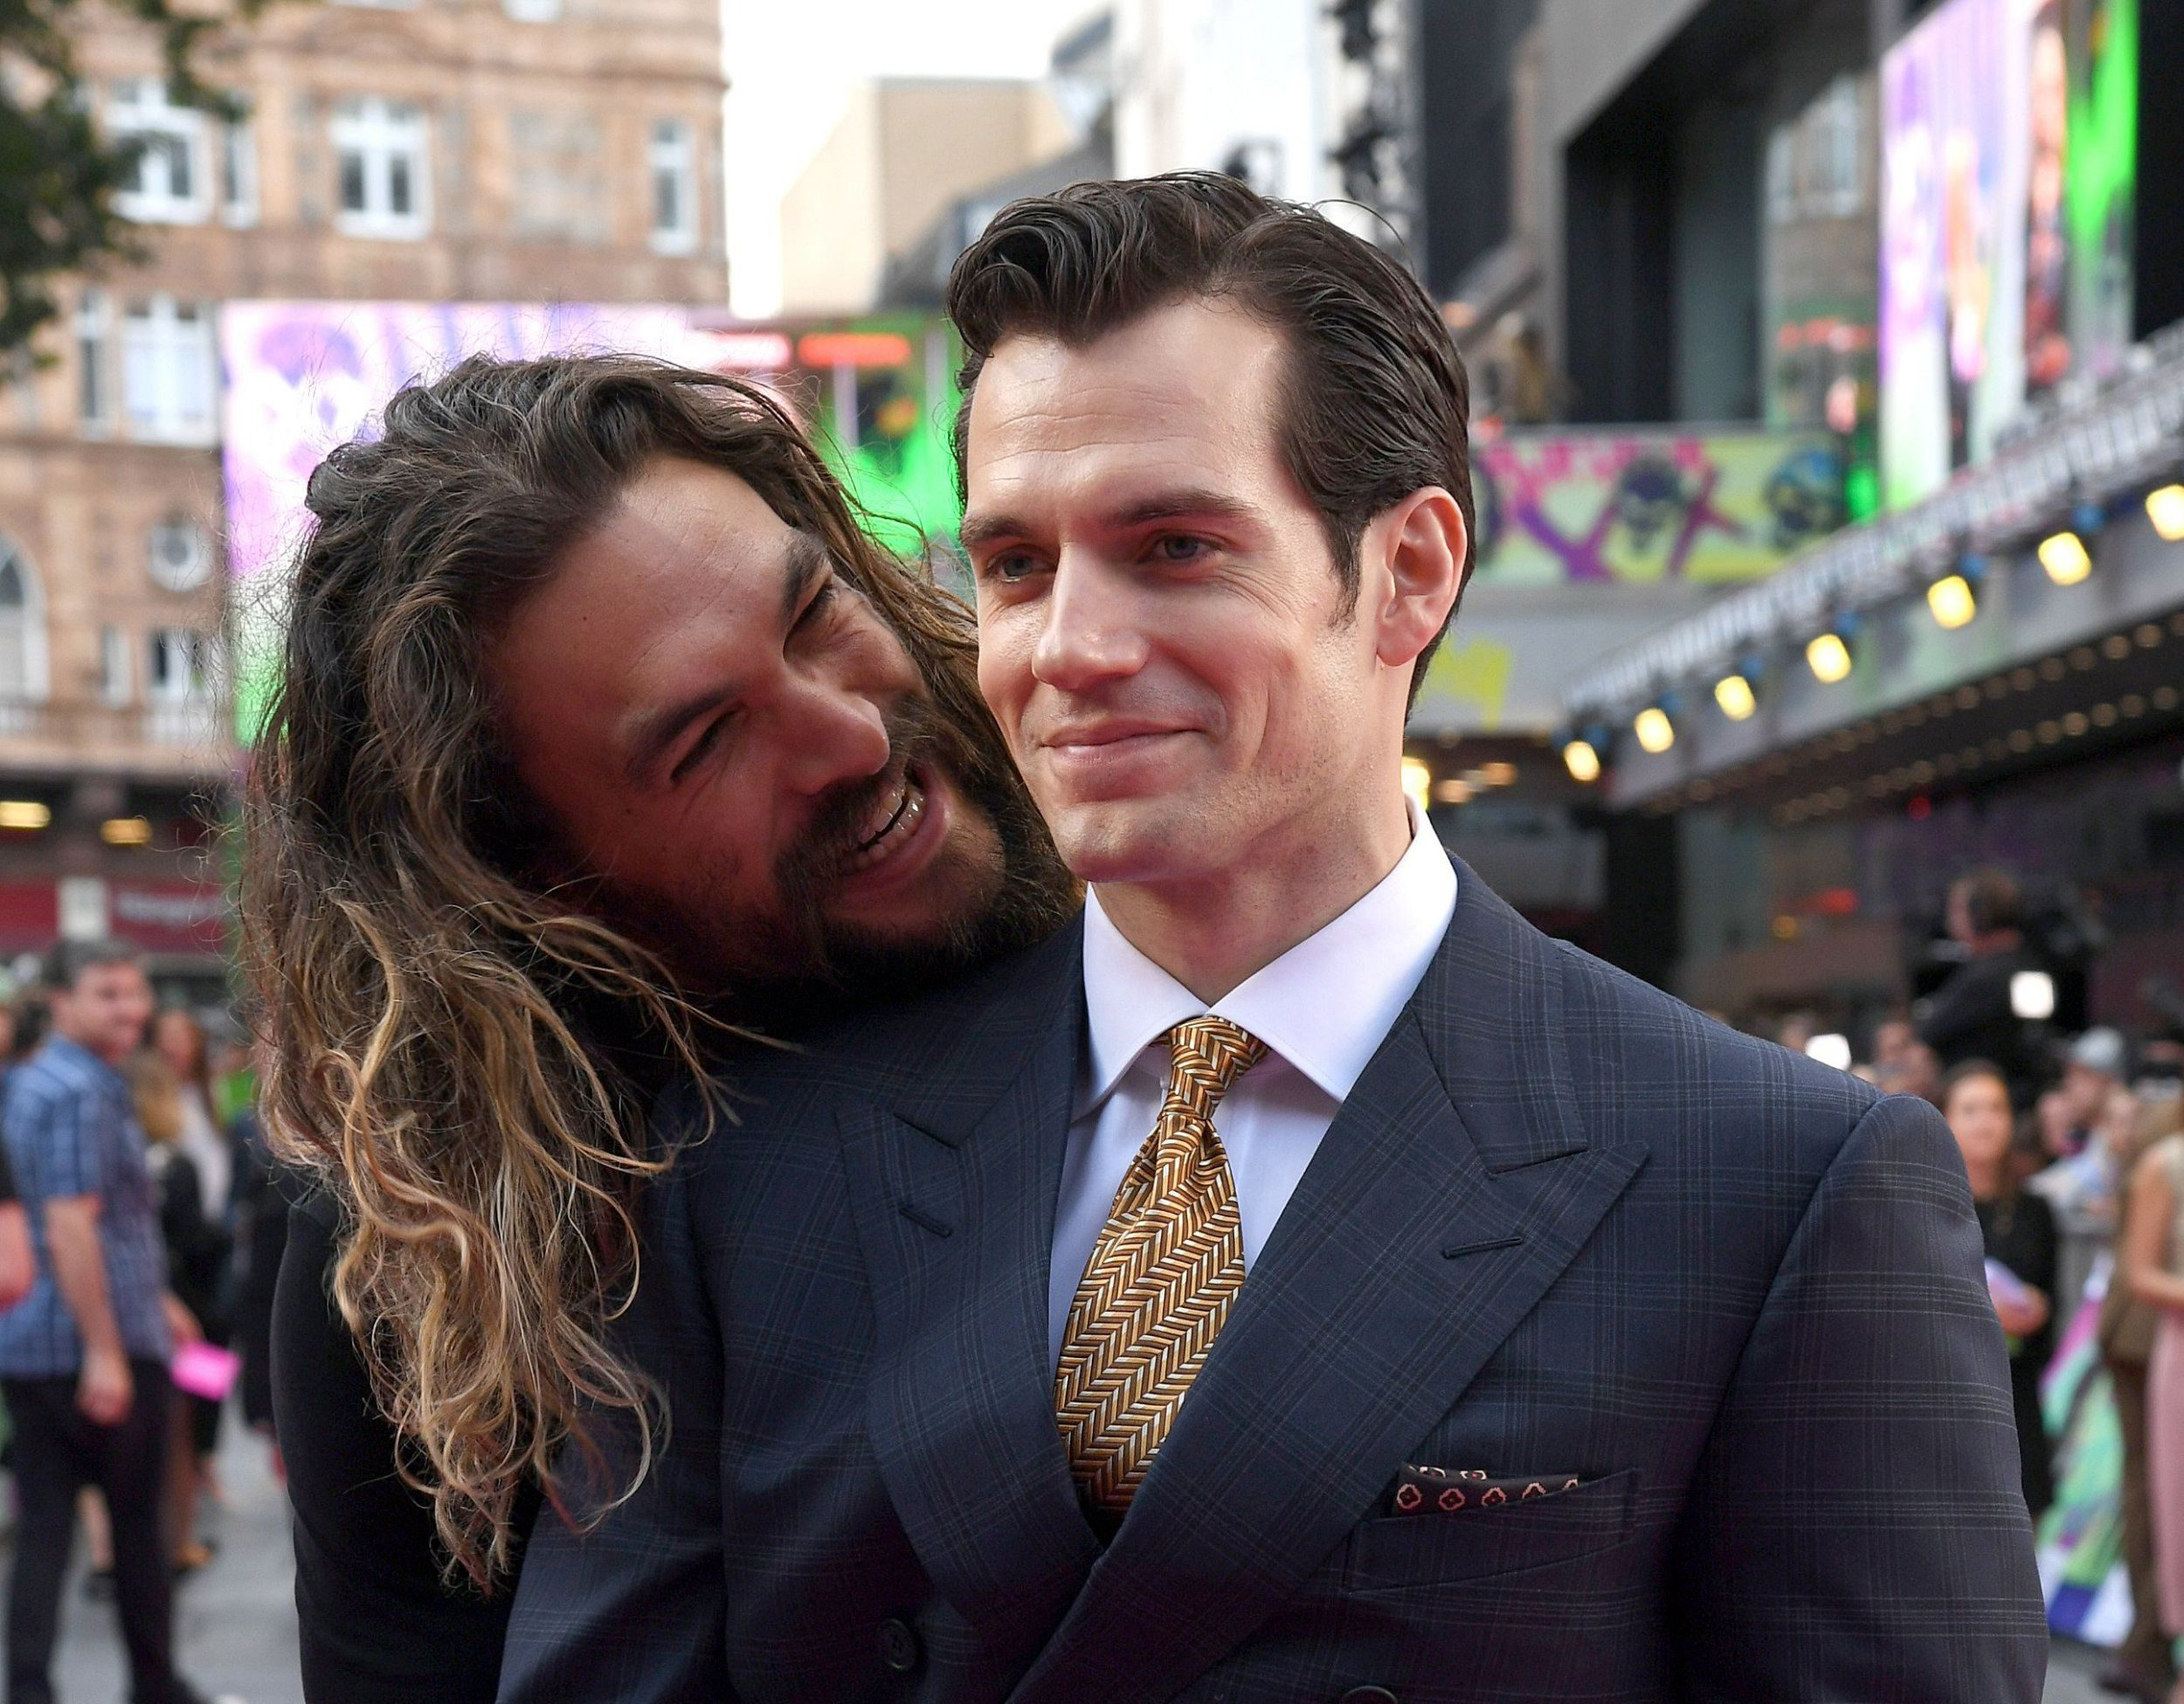 Mandatory Credit: Photo by Richard Young/REX/Shutterstock (5821469bl) Jason Momoa and Henry Cavill 'Suicide Squad' film premiere, London, UK - 03 Aug 2016